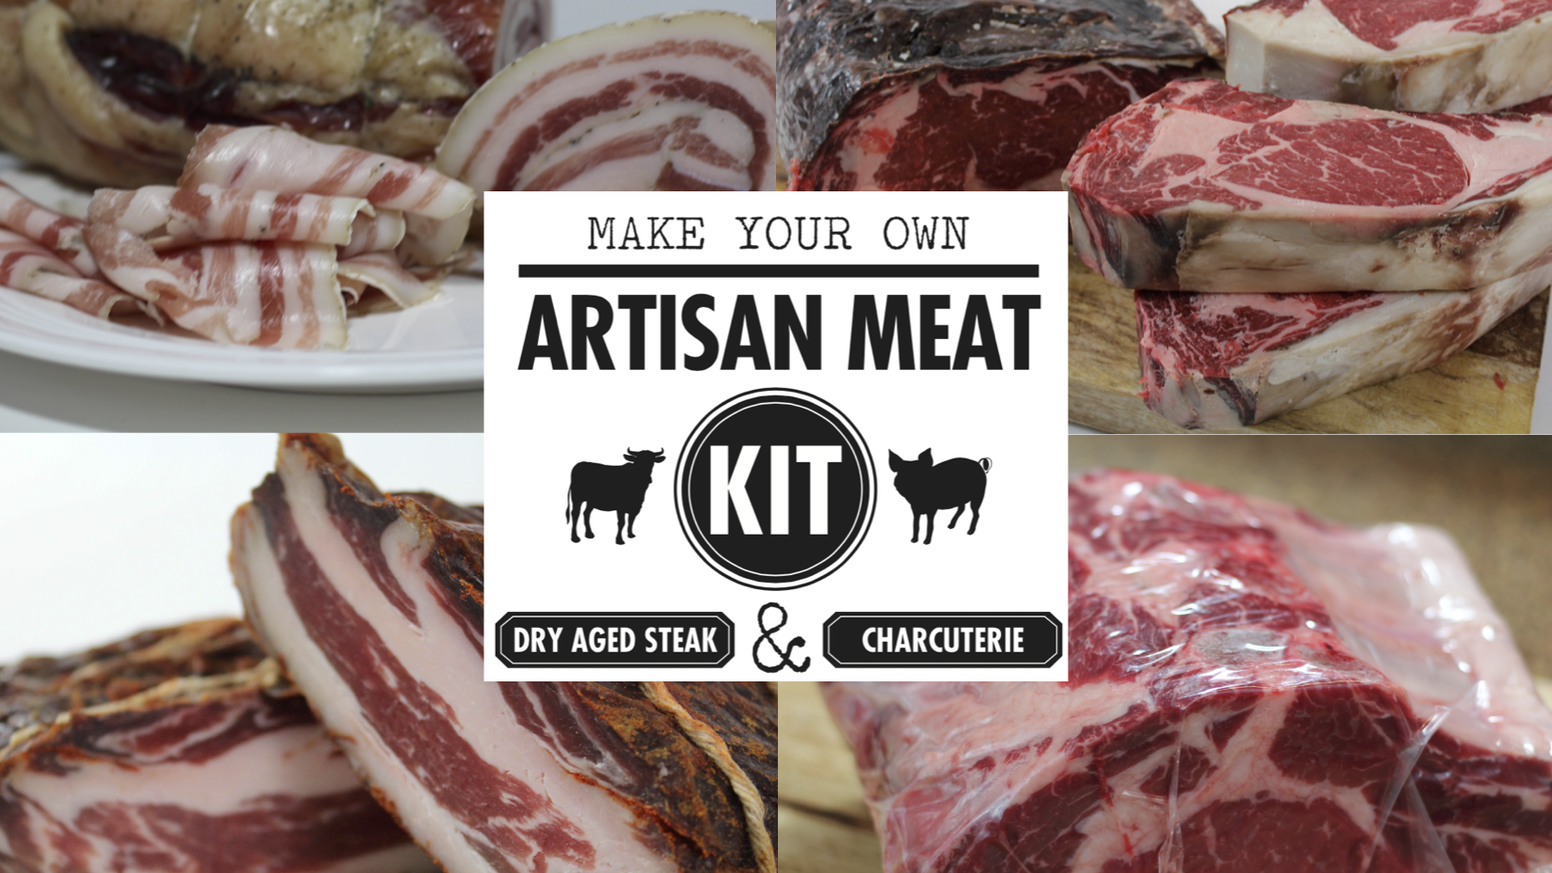 With UMAi Dry® Artisan Meat Kits, you can craft authentic dry aged steak & charcuterie in your home fridge. Help us bring these to you!